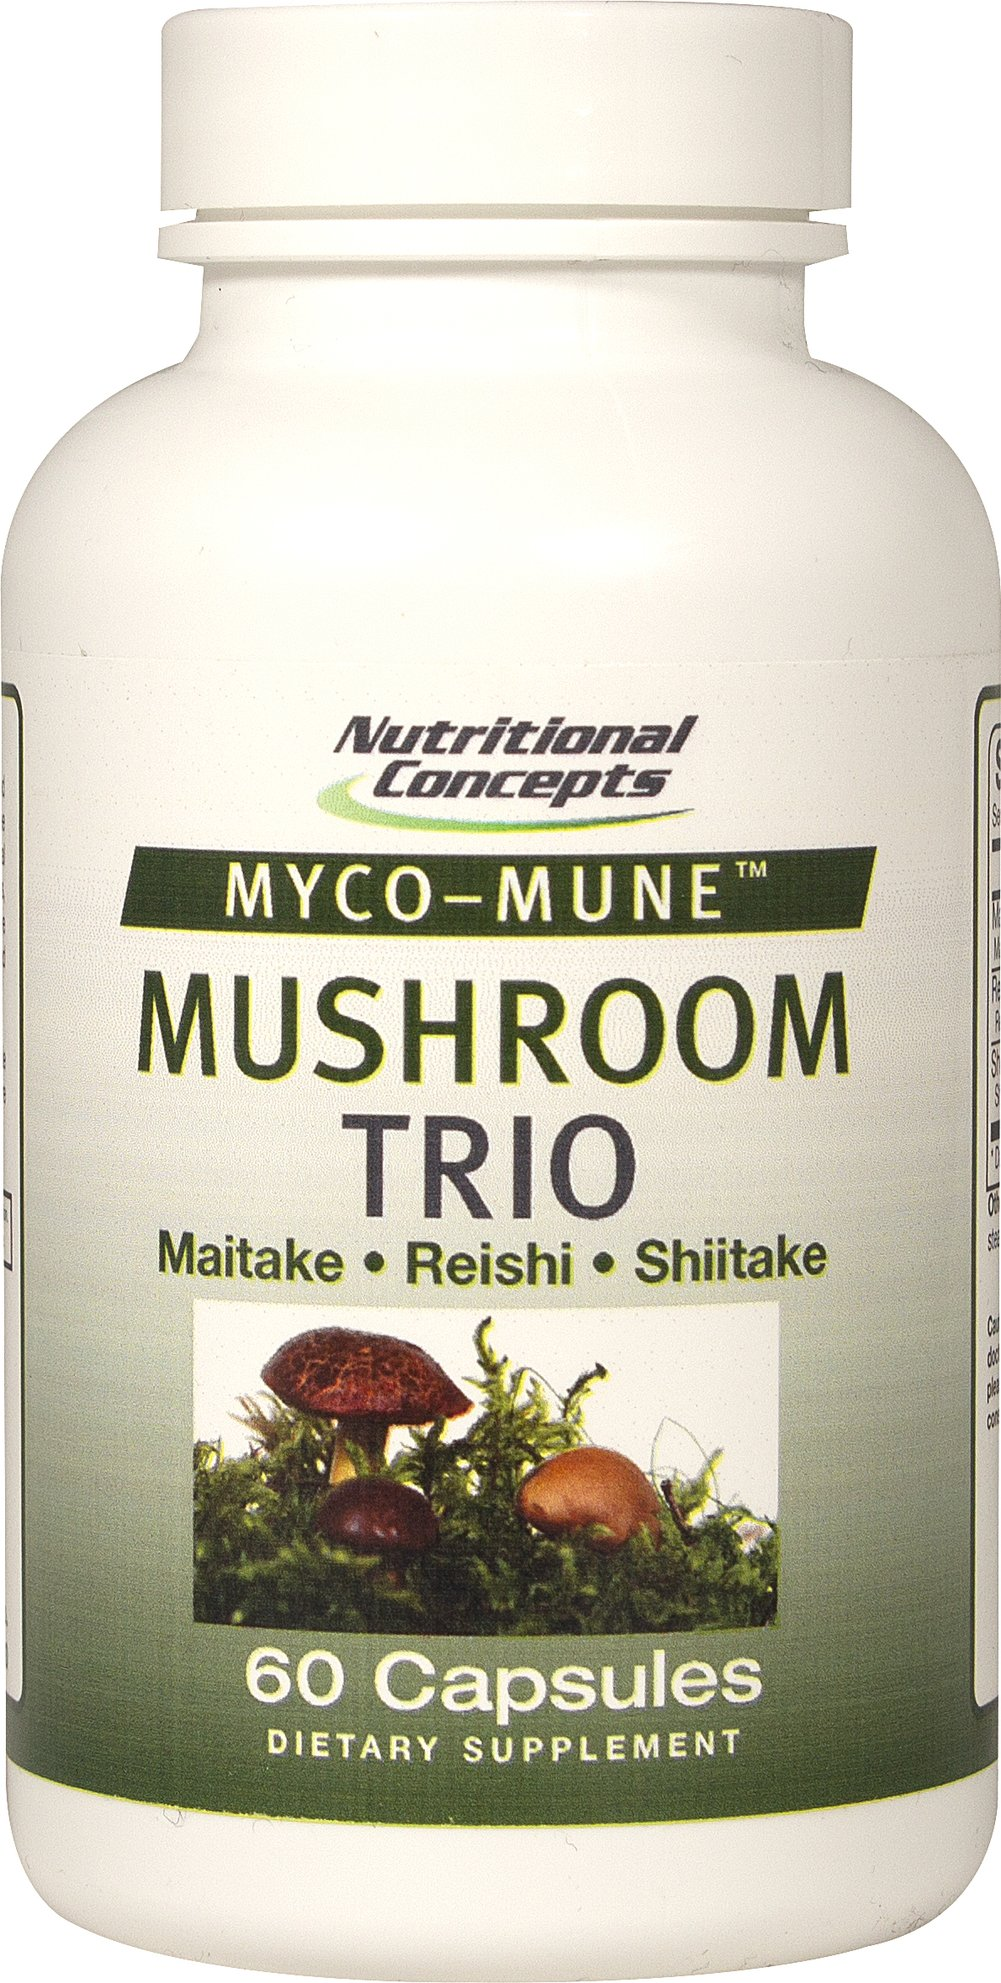 Myco-Mune™ Mushroom Trio Maitake, Reishi, Shiitake <p>Myco-Mune™ Mushroom Trio – is an optimized blend of the worlds finest mushrooms. Mushrooms are a leading source of the essential antioxidant selenium and ergothioneine. Eastern cultures have revered mushrooms health benefits for centuries. </p><p></p> 60 Capsules  $15.99